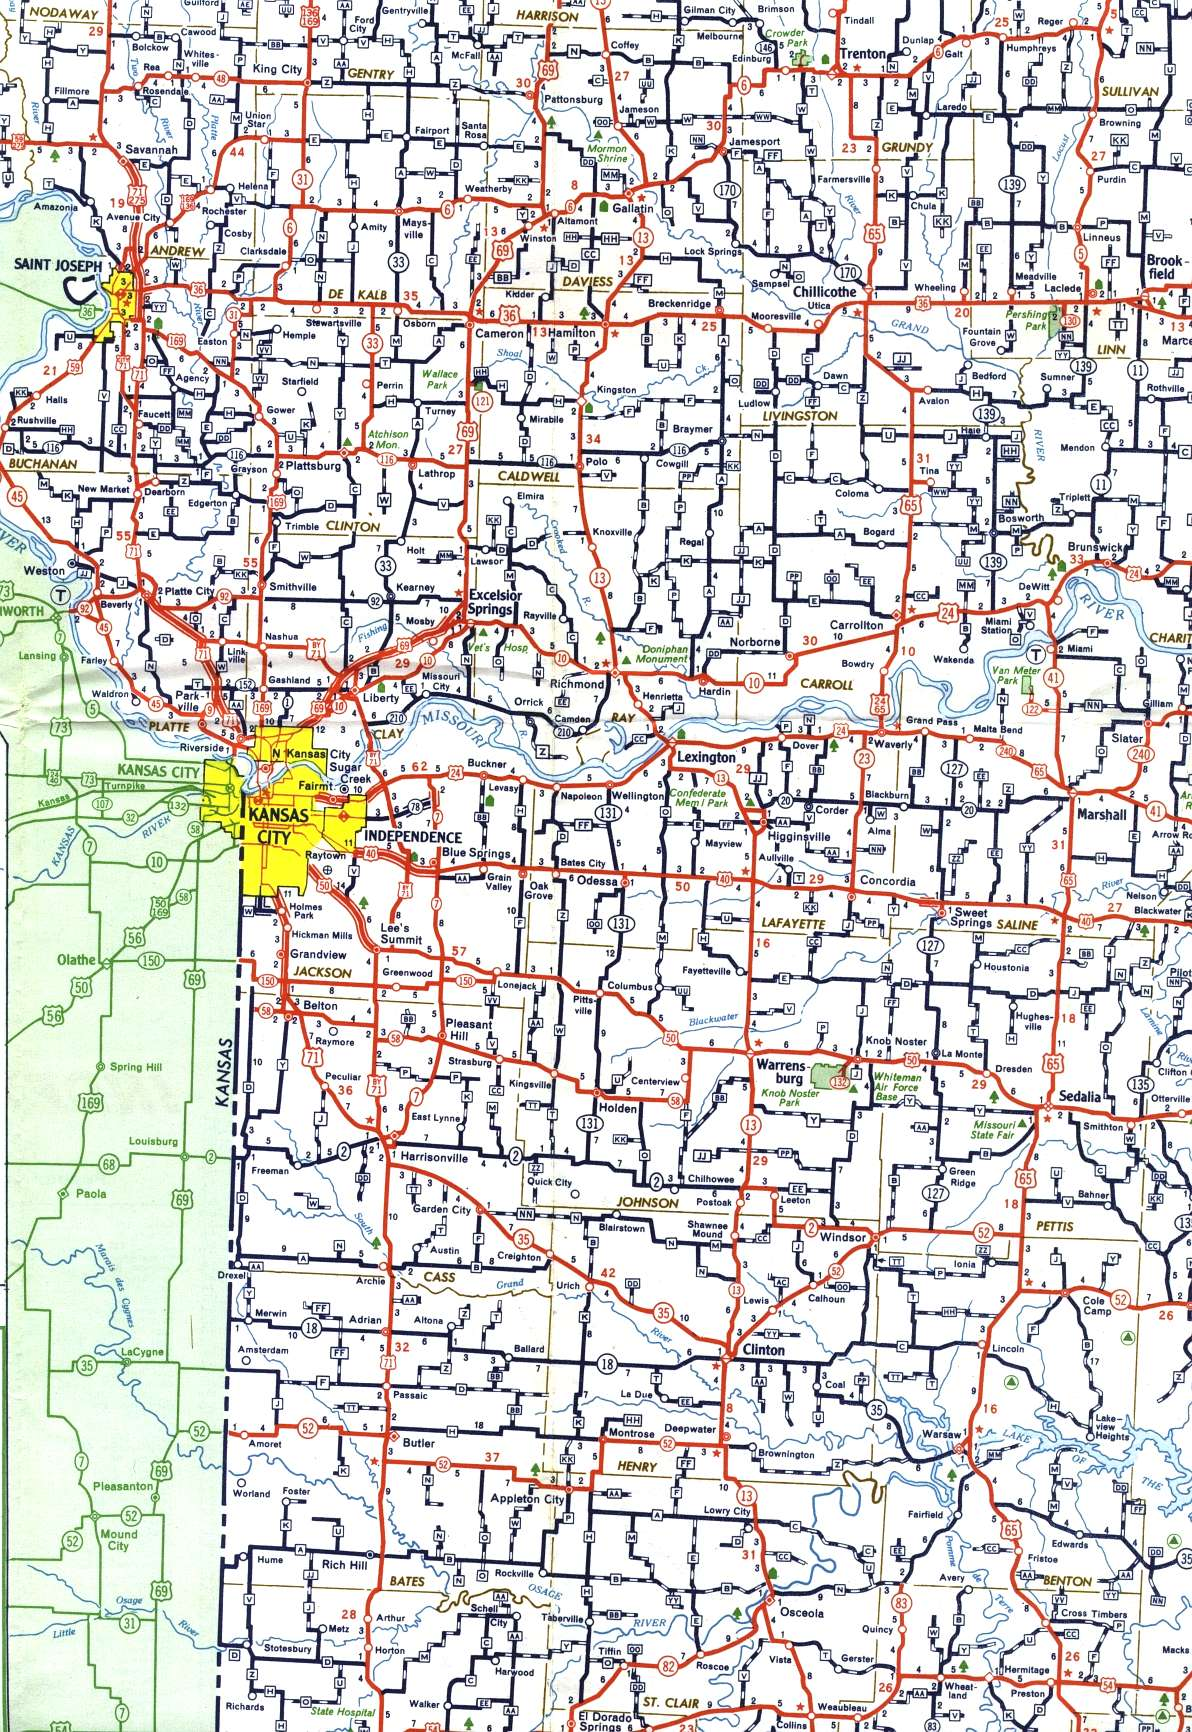 Missouri Highways Unofficial Section Of Official Highway Map - Missouri highway map